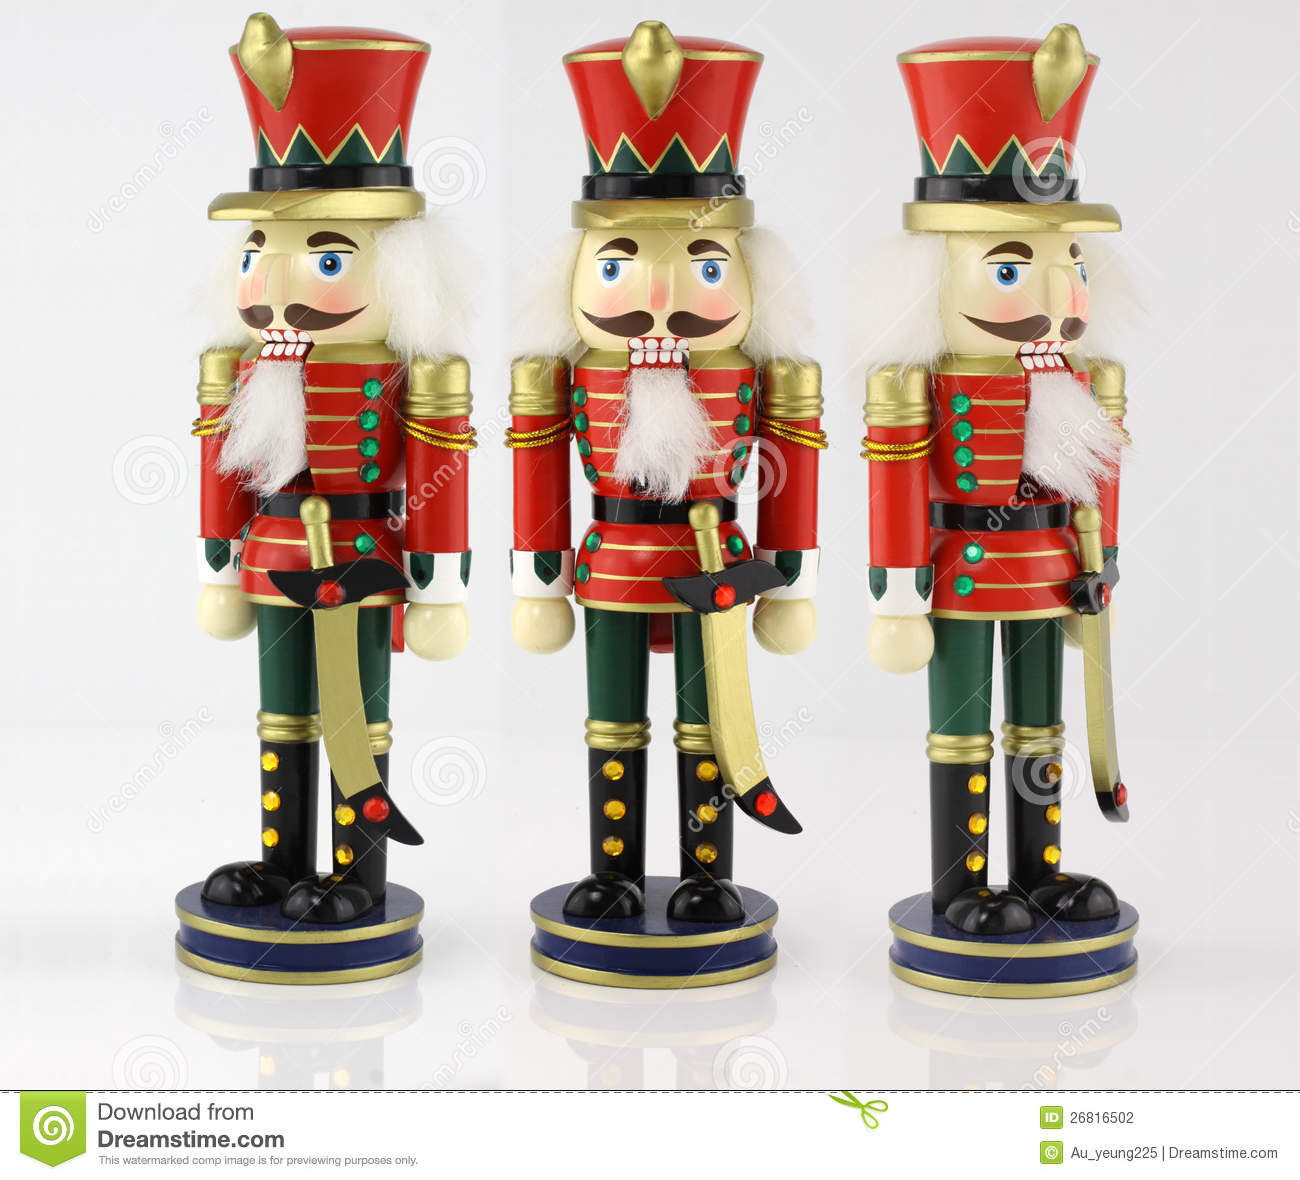 Traditional nutcracker doll on a white background.